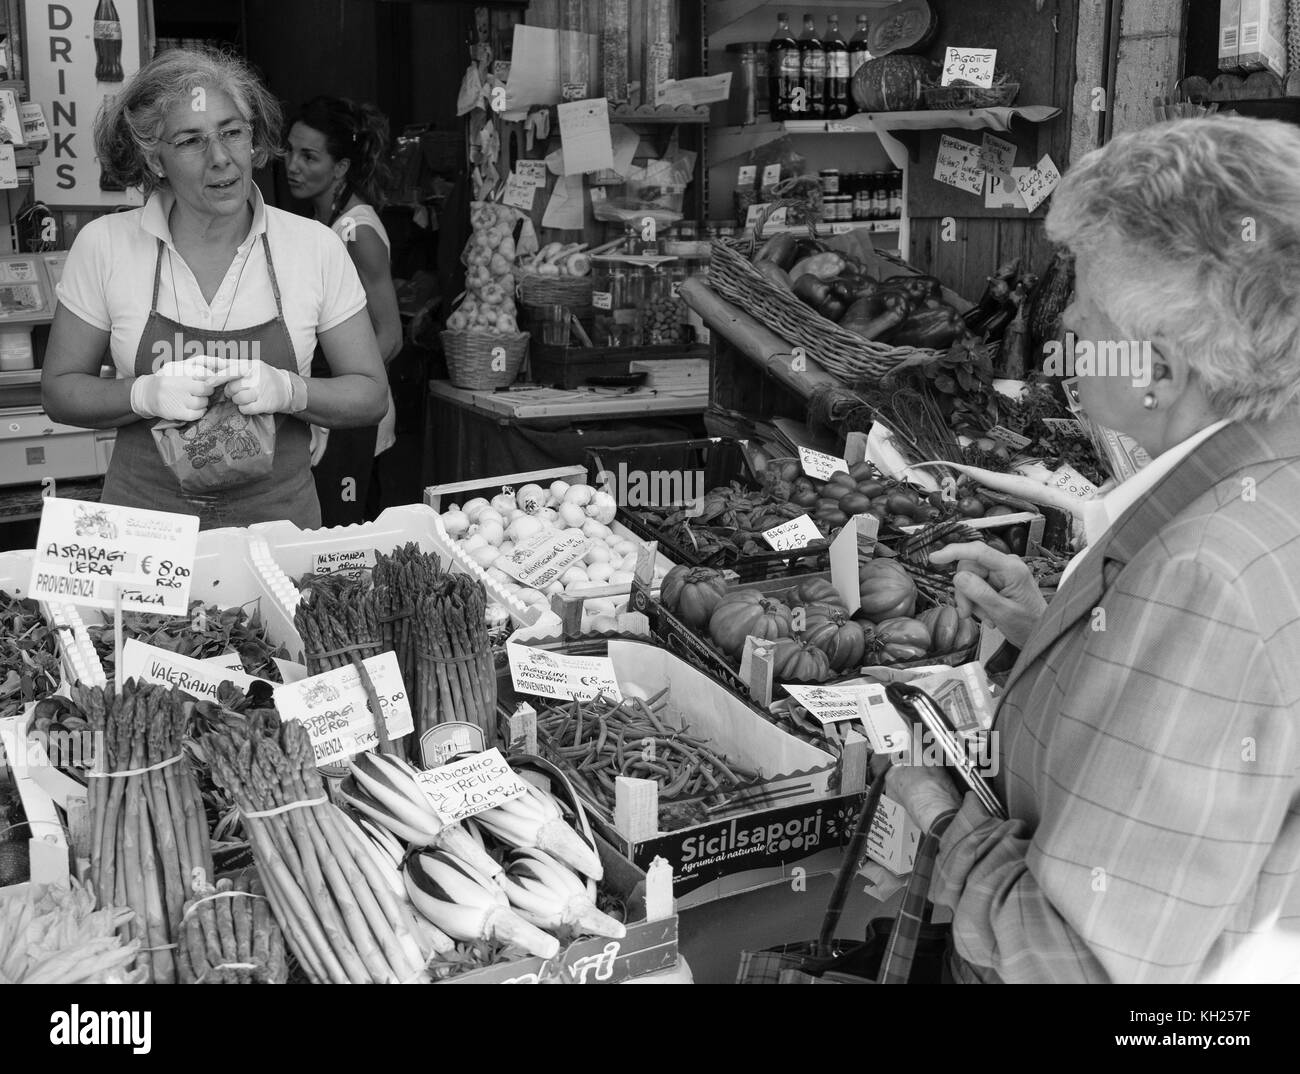 Two women converse at a market stand where fresh produce is being sold in Venice, Italy - Stock Image